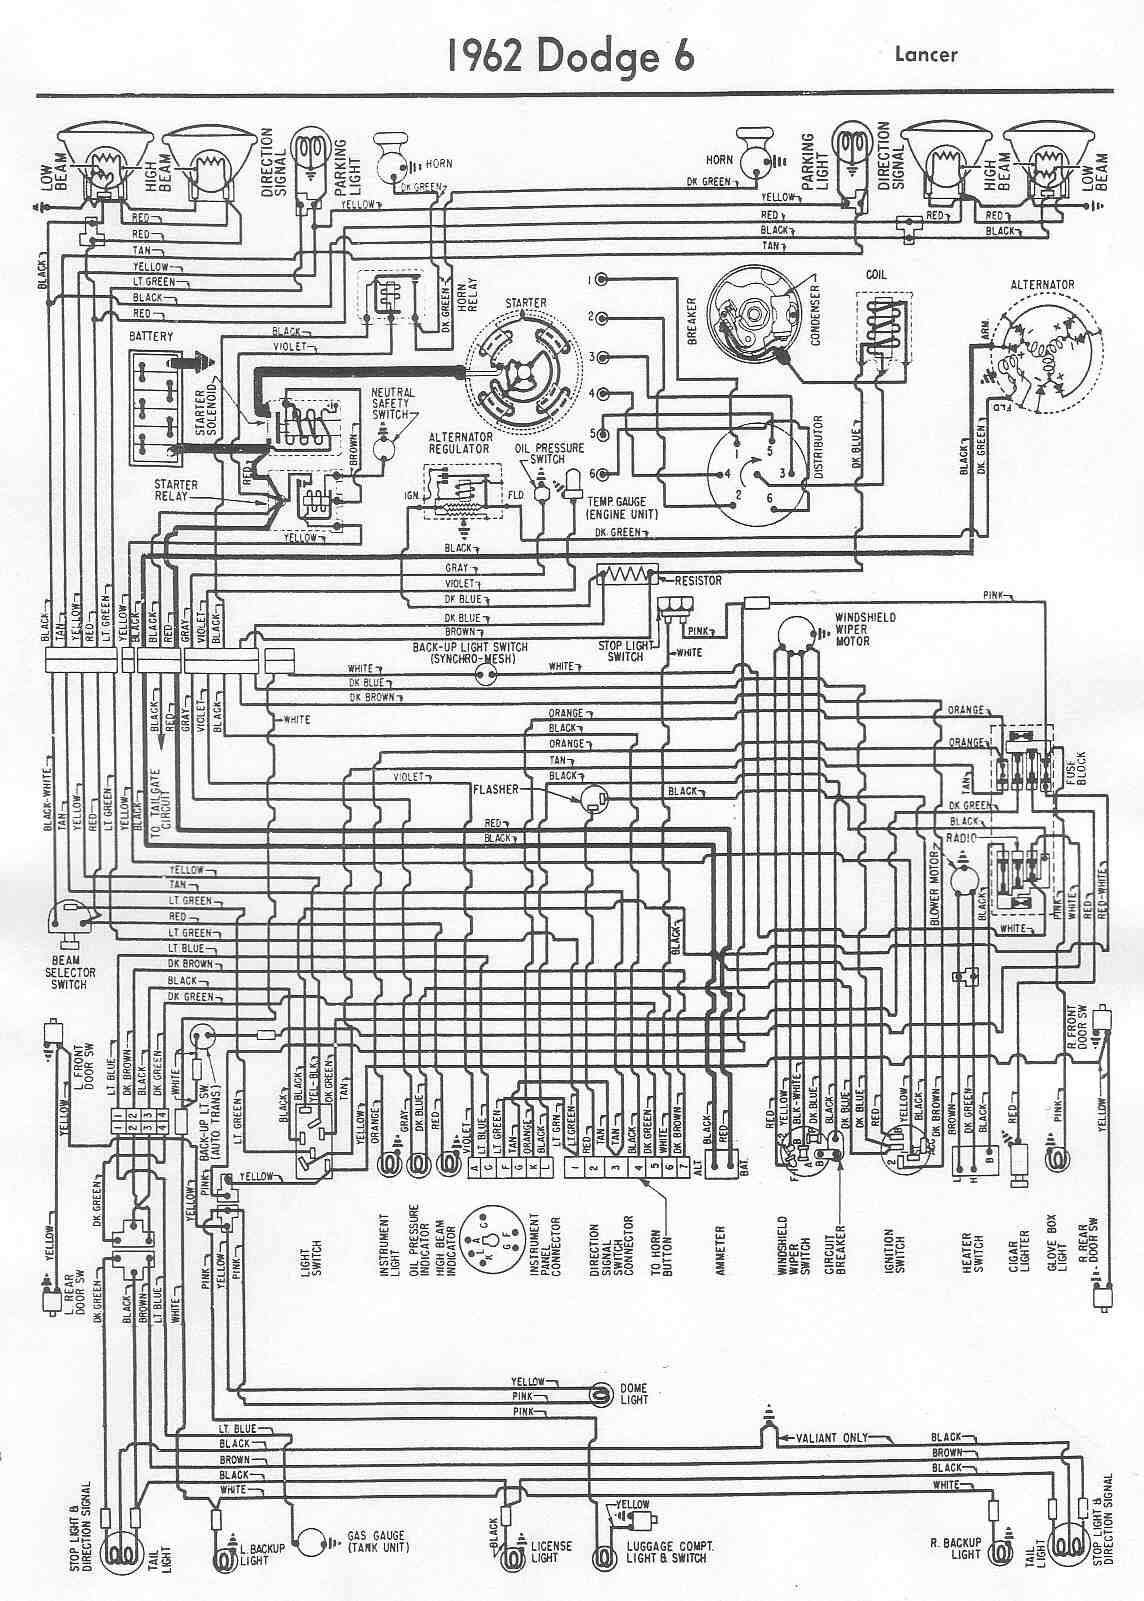 Dodge Car Manuals Wiring Diagrams Pdf Fault Codes 1992 Polaris Wire Diagram Schematic Download